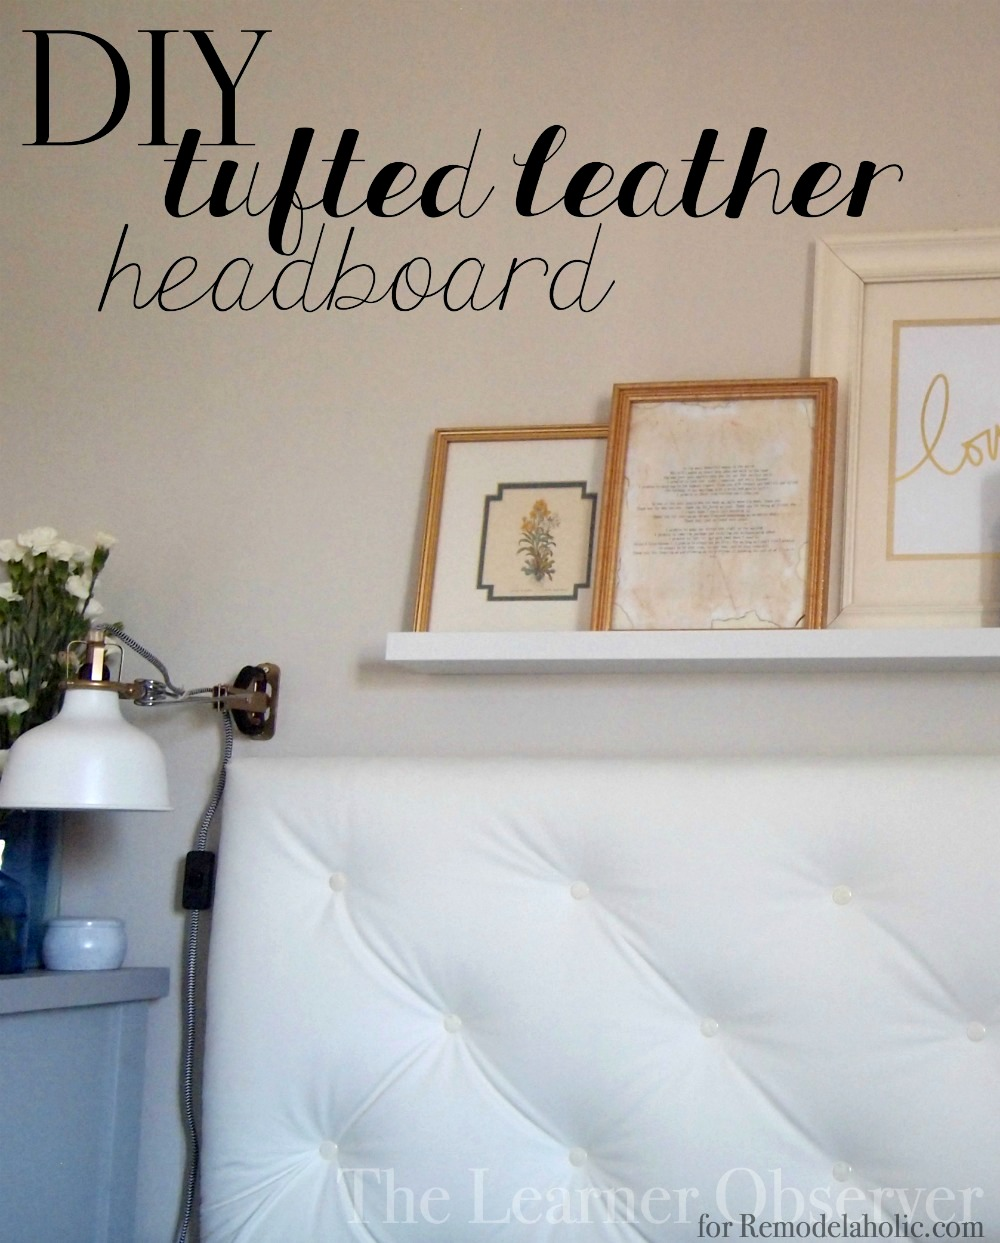 Remodelaholic | Make a Tufted Leather Headboard